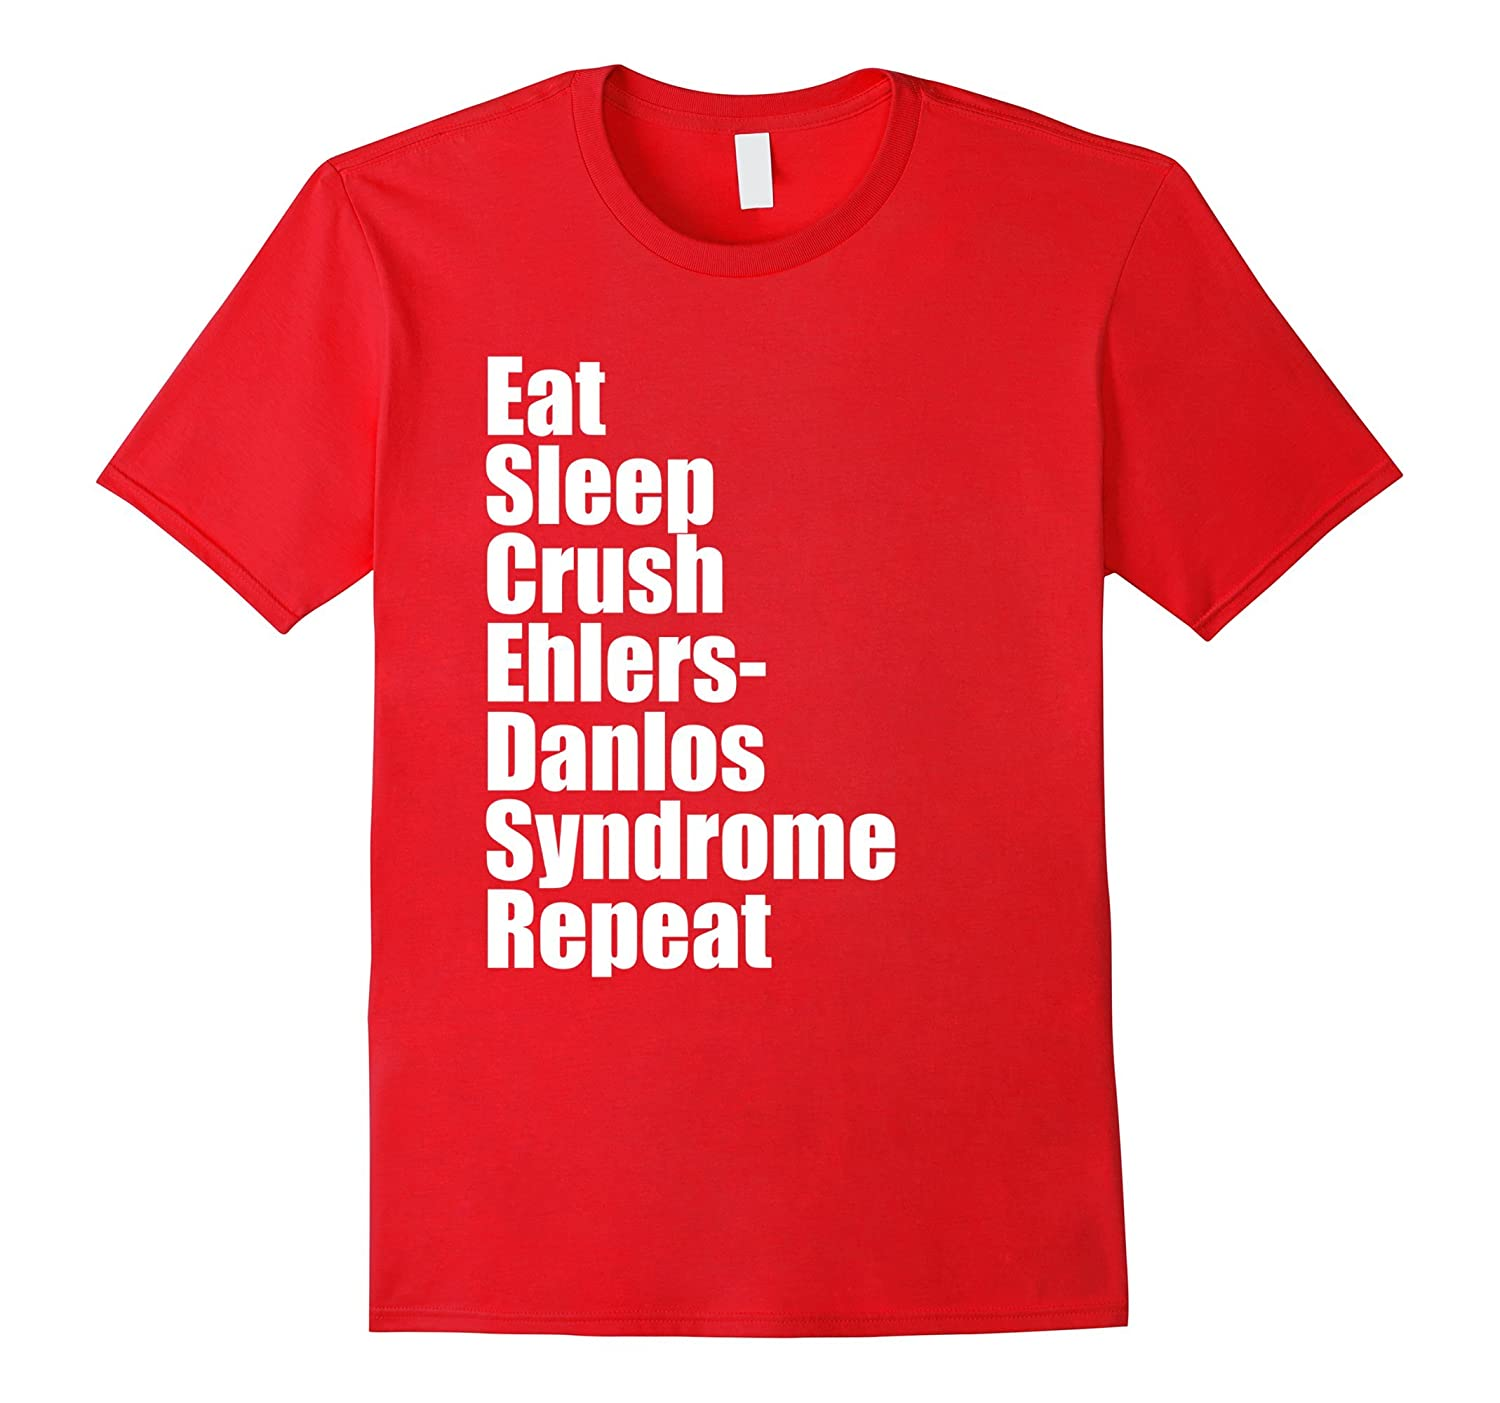 Eat Sleep Crush Ehlers-Danlos Syndrome Repeat T-Shirt-CD